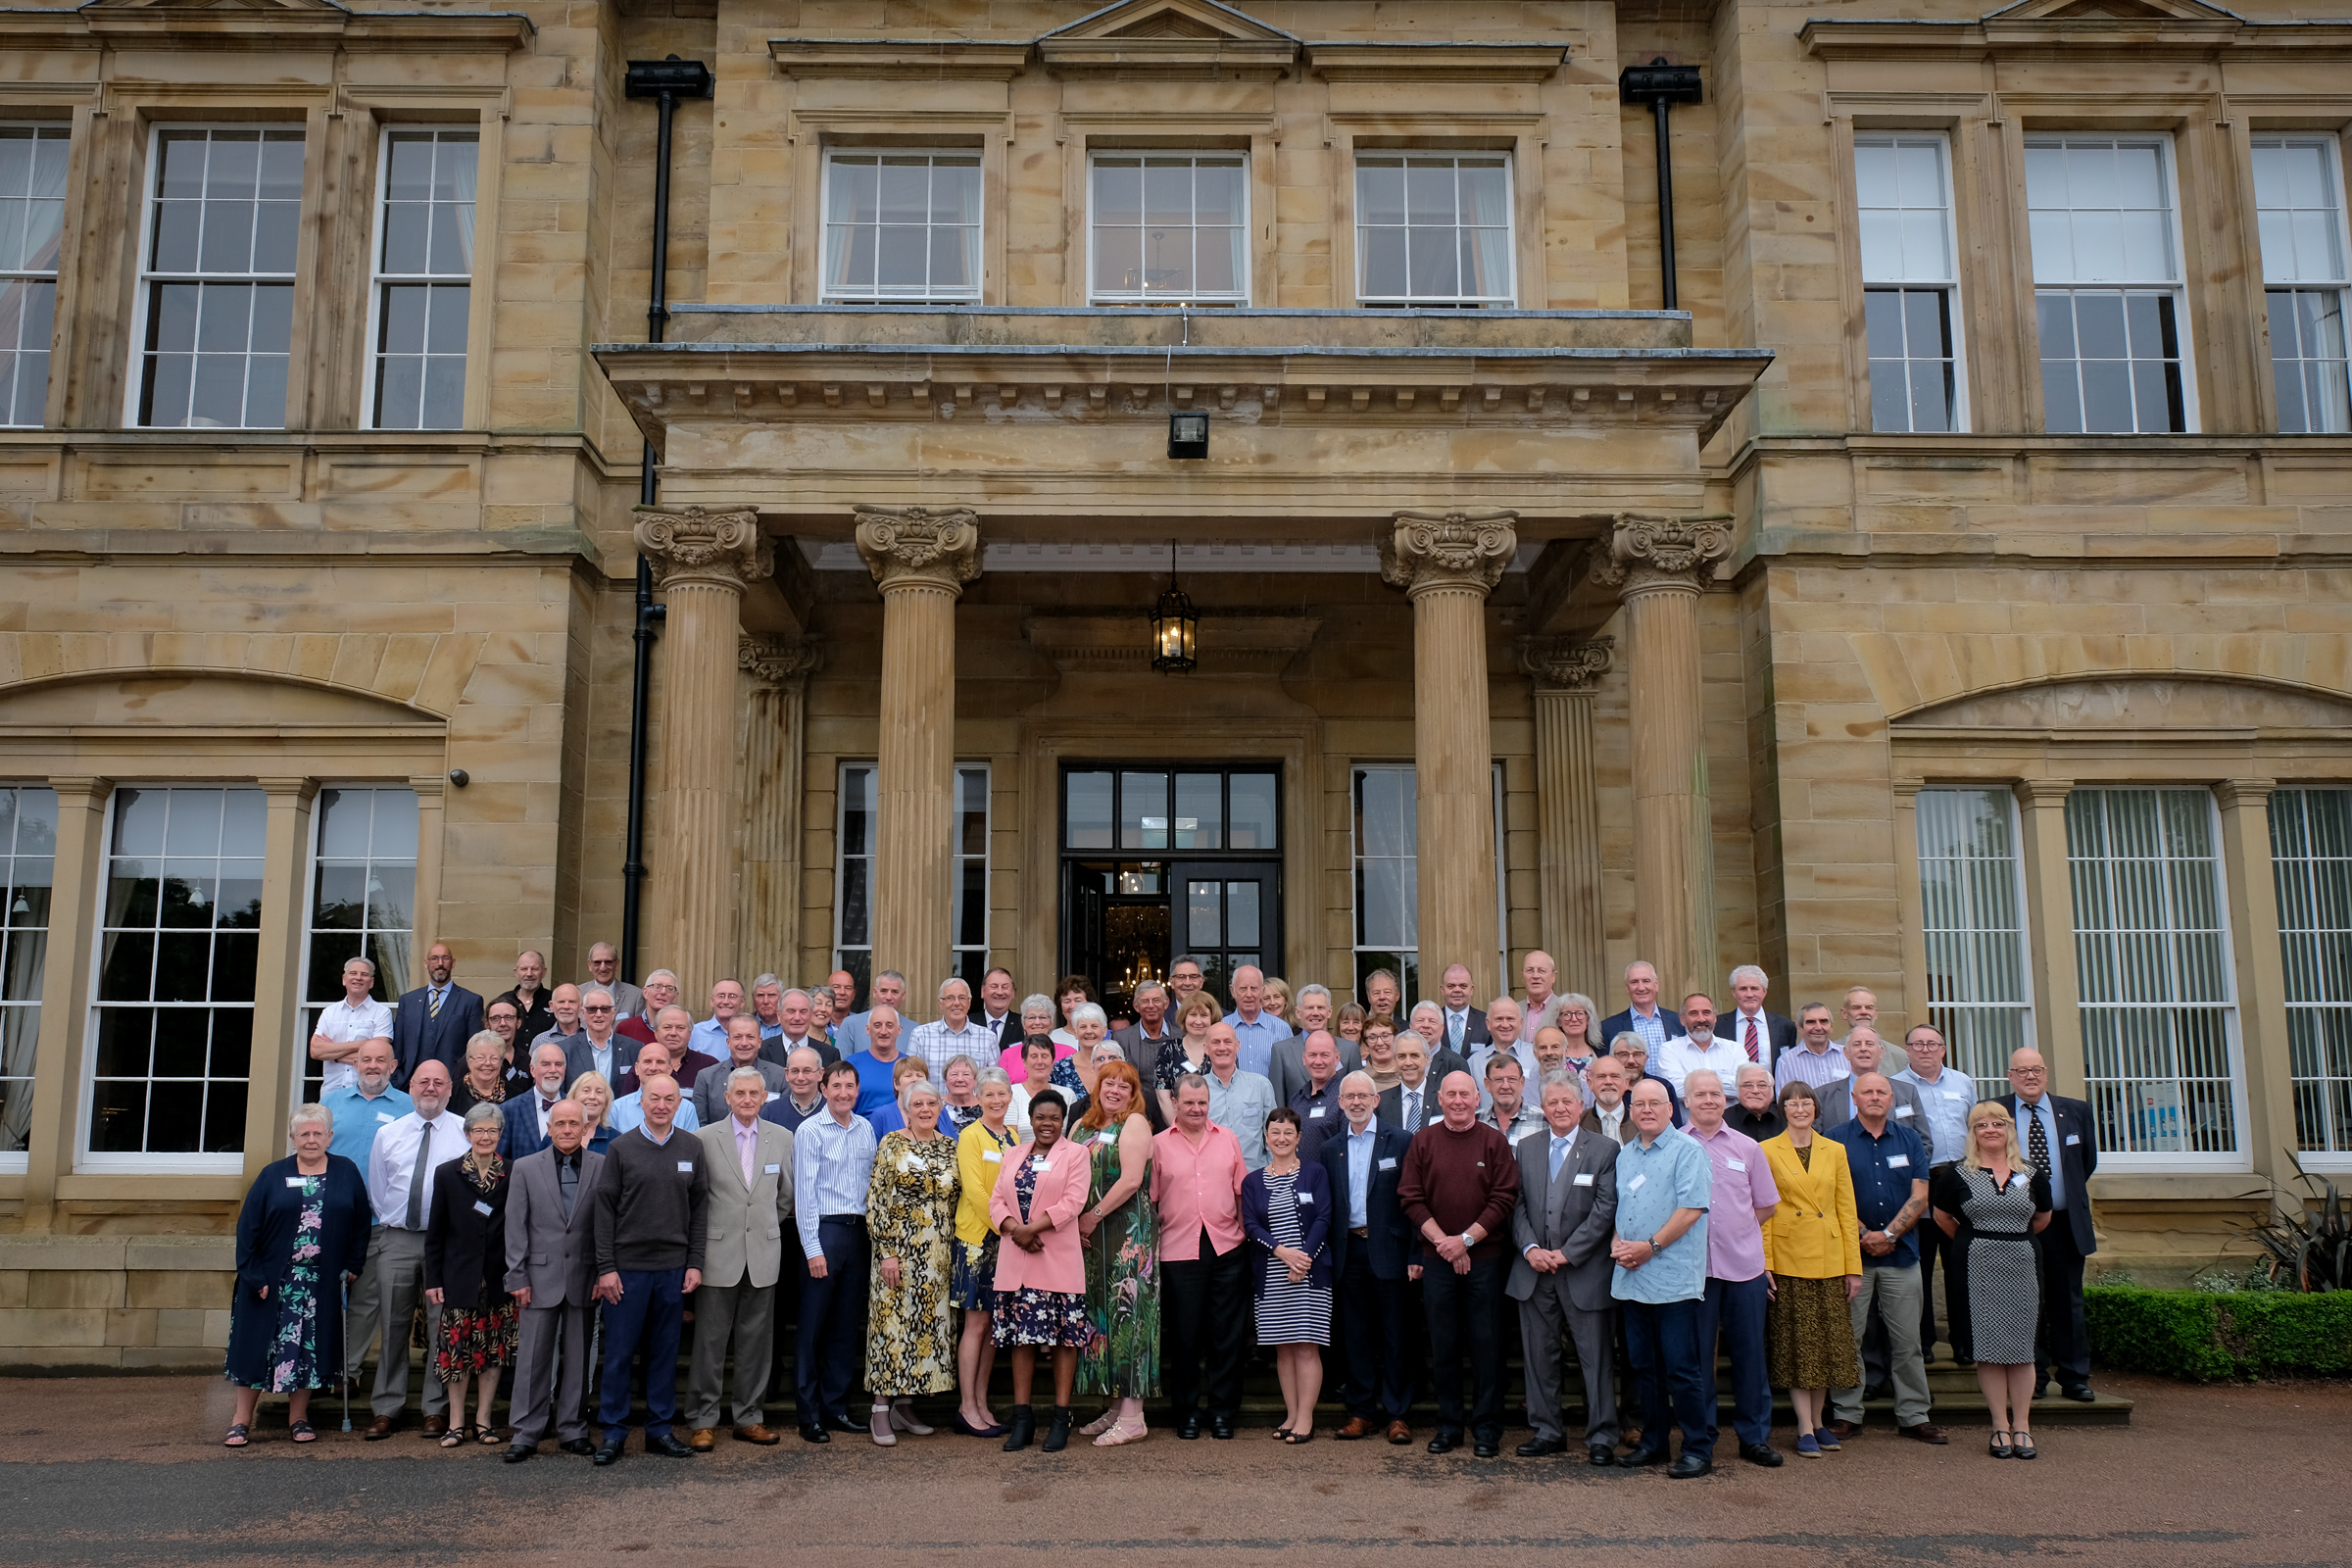 Donors outside a ceremony at Oulton Hall, West Yorkshire